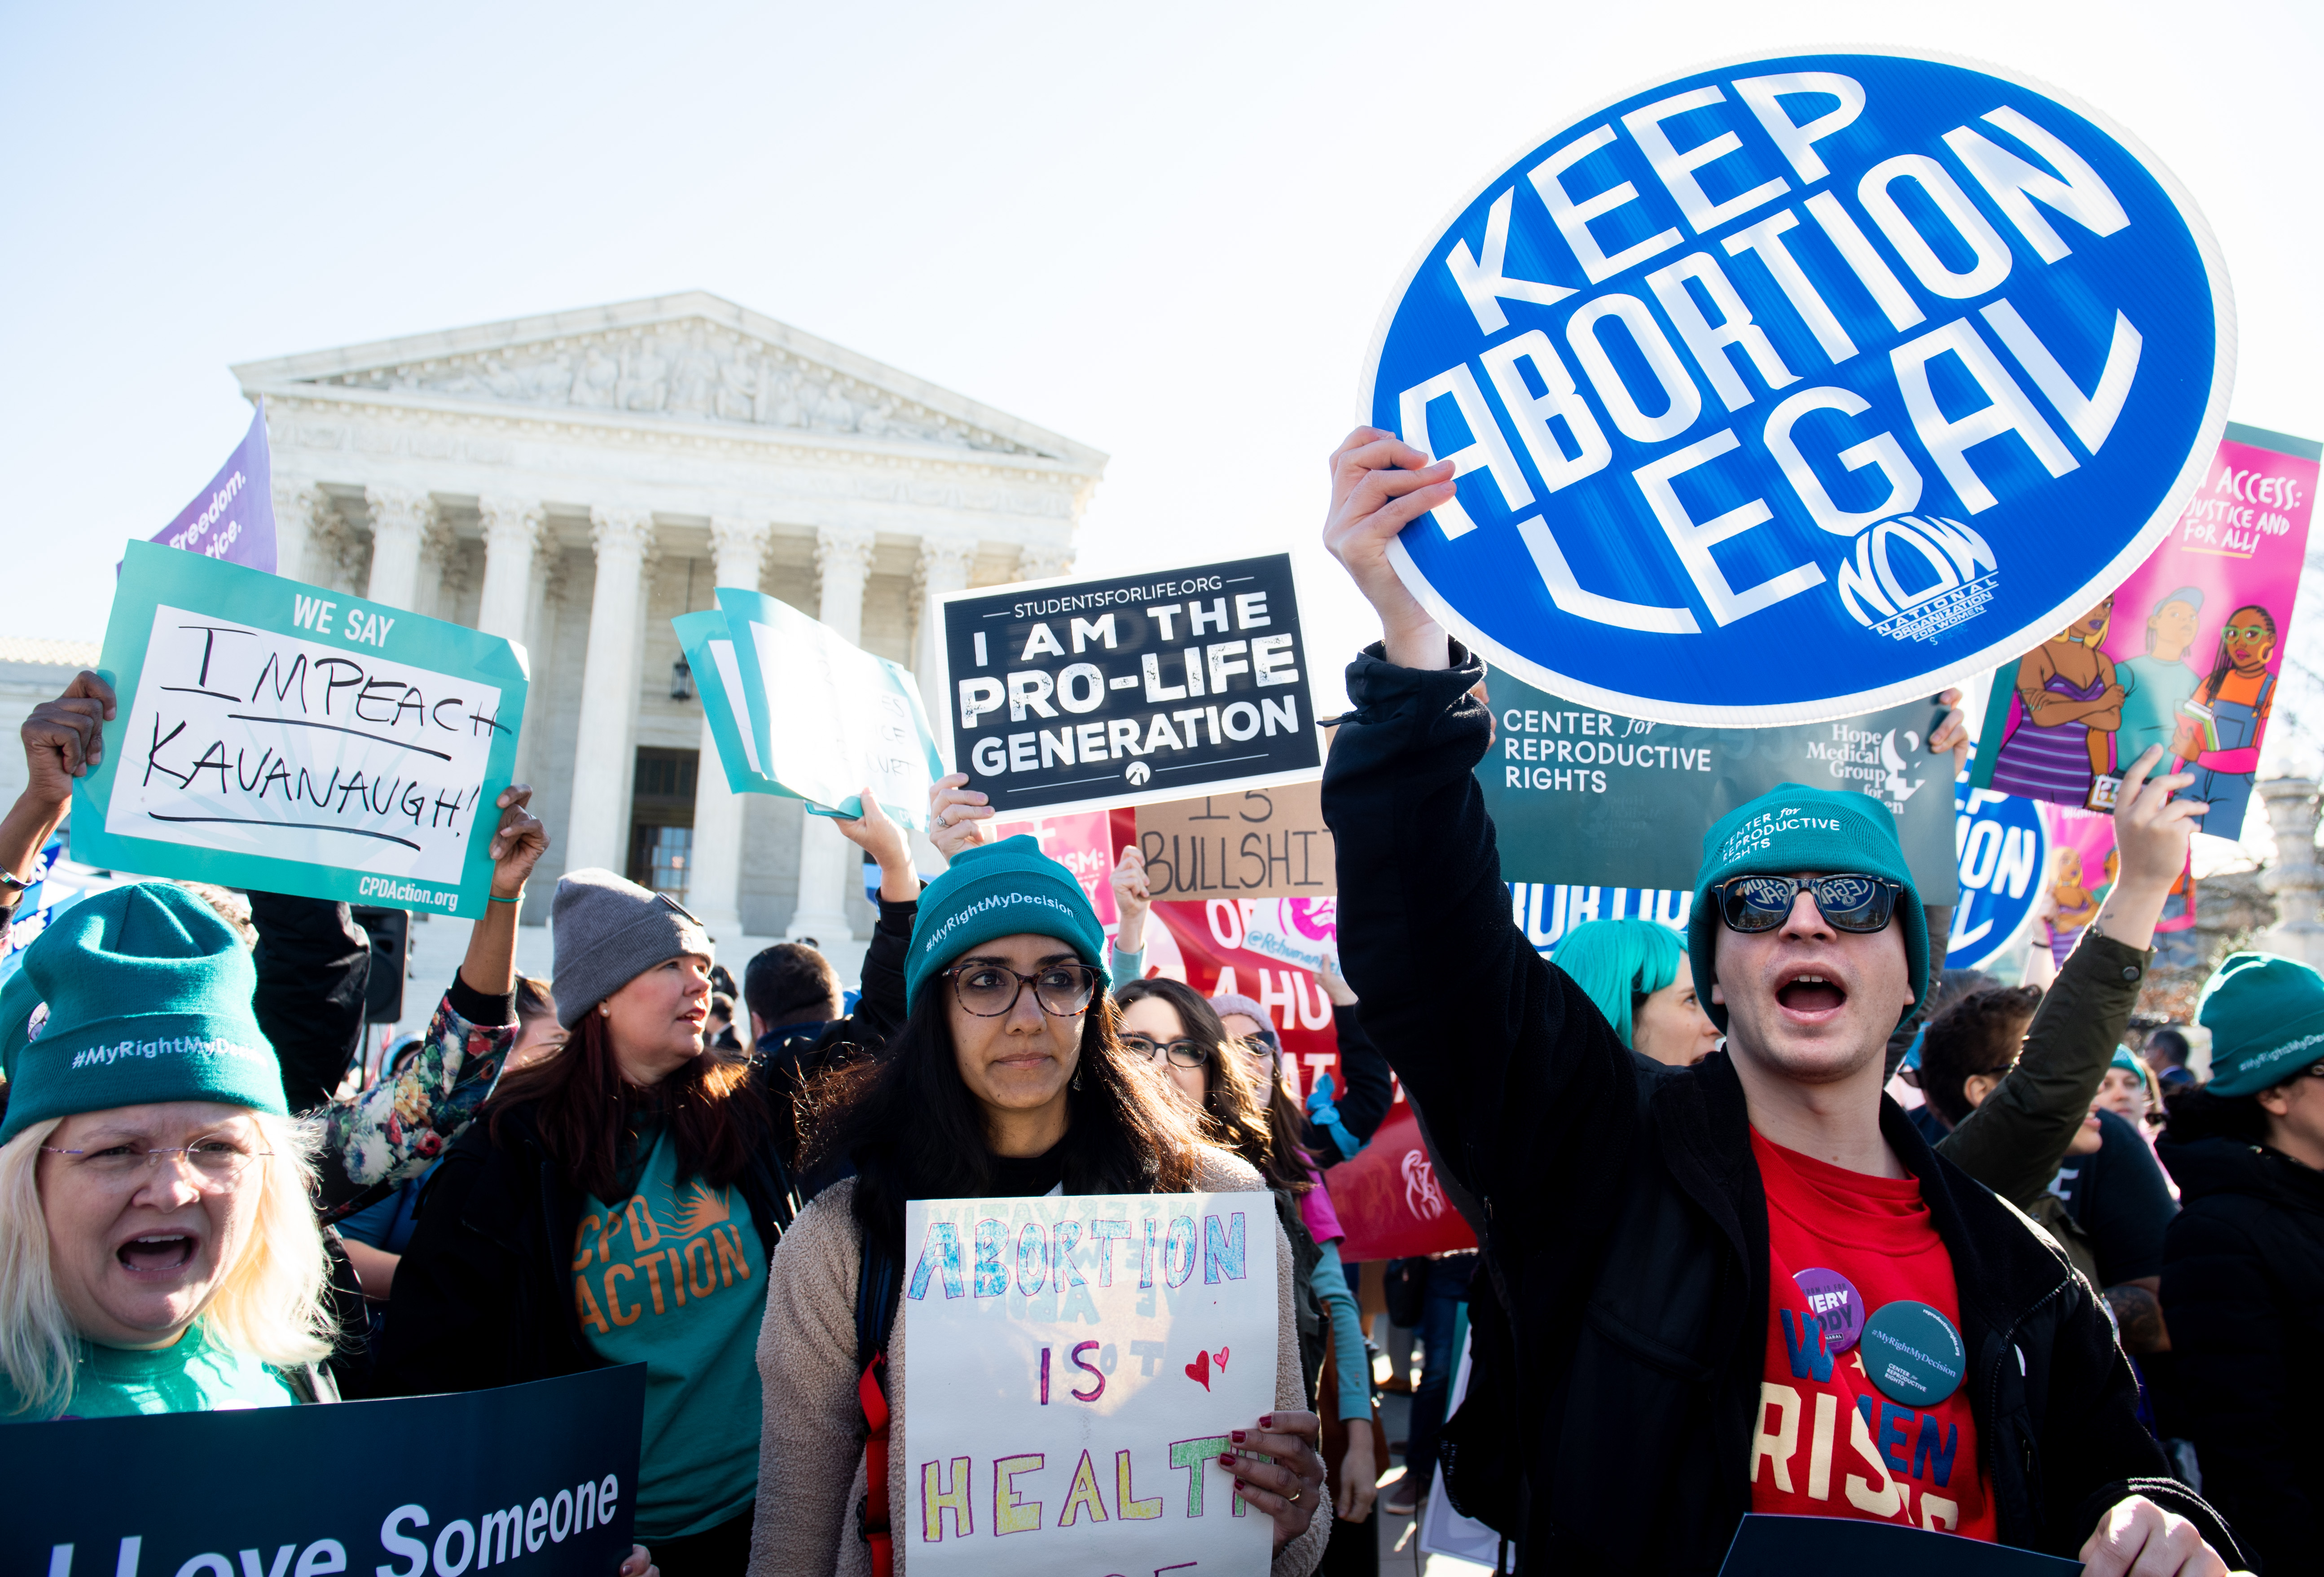 Abortion rights activists and those opposing abortion protest during a demonstration outside the U.S. Supreme Court in Washington, D.C., March 4, 2020, during oral arguments regarding a Louisiana law about abortion access.